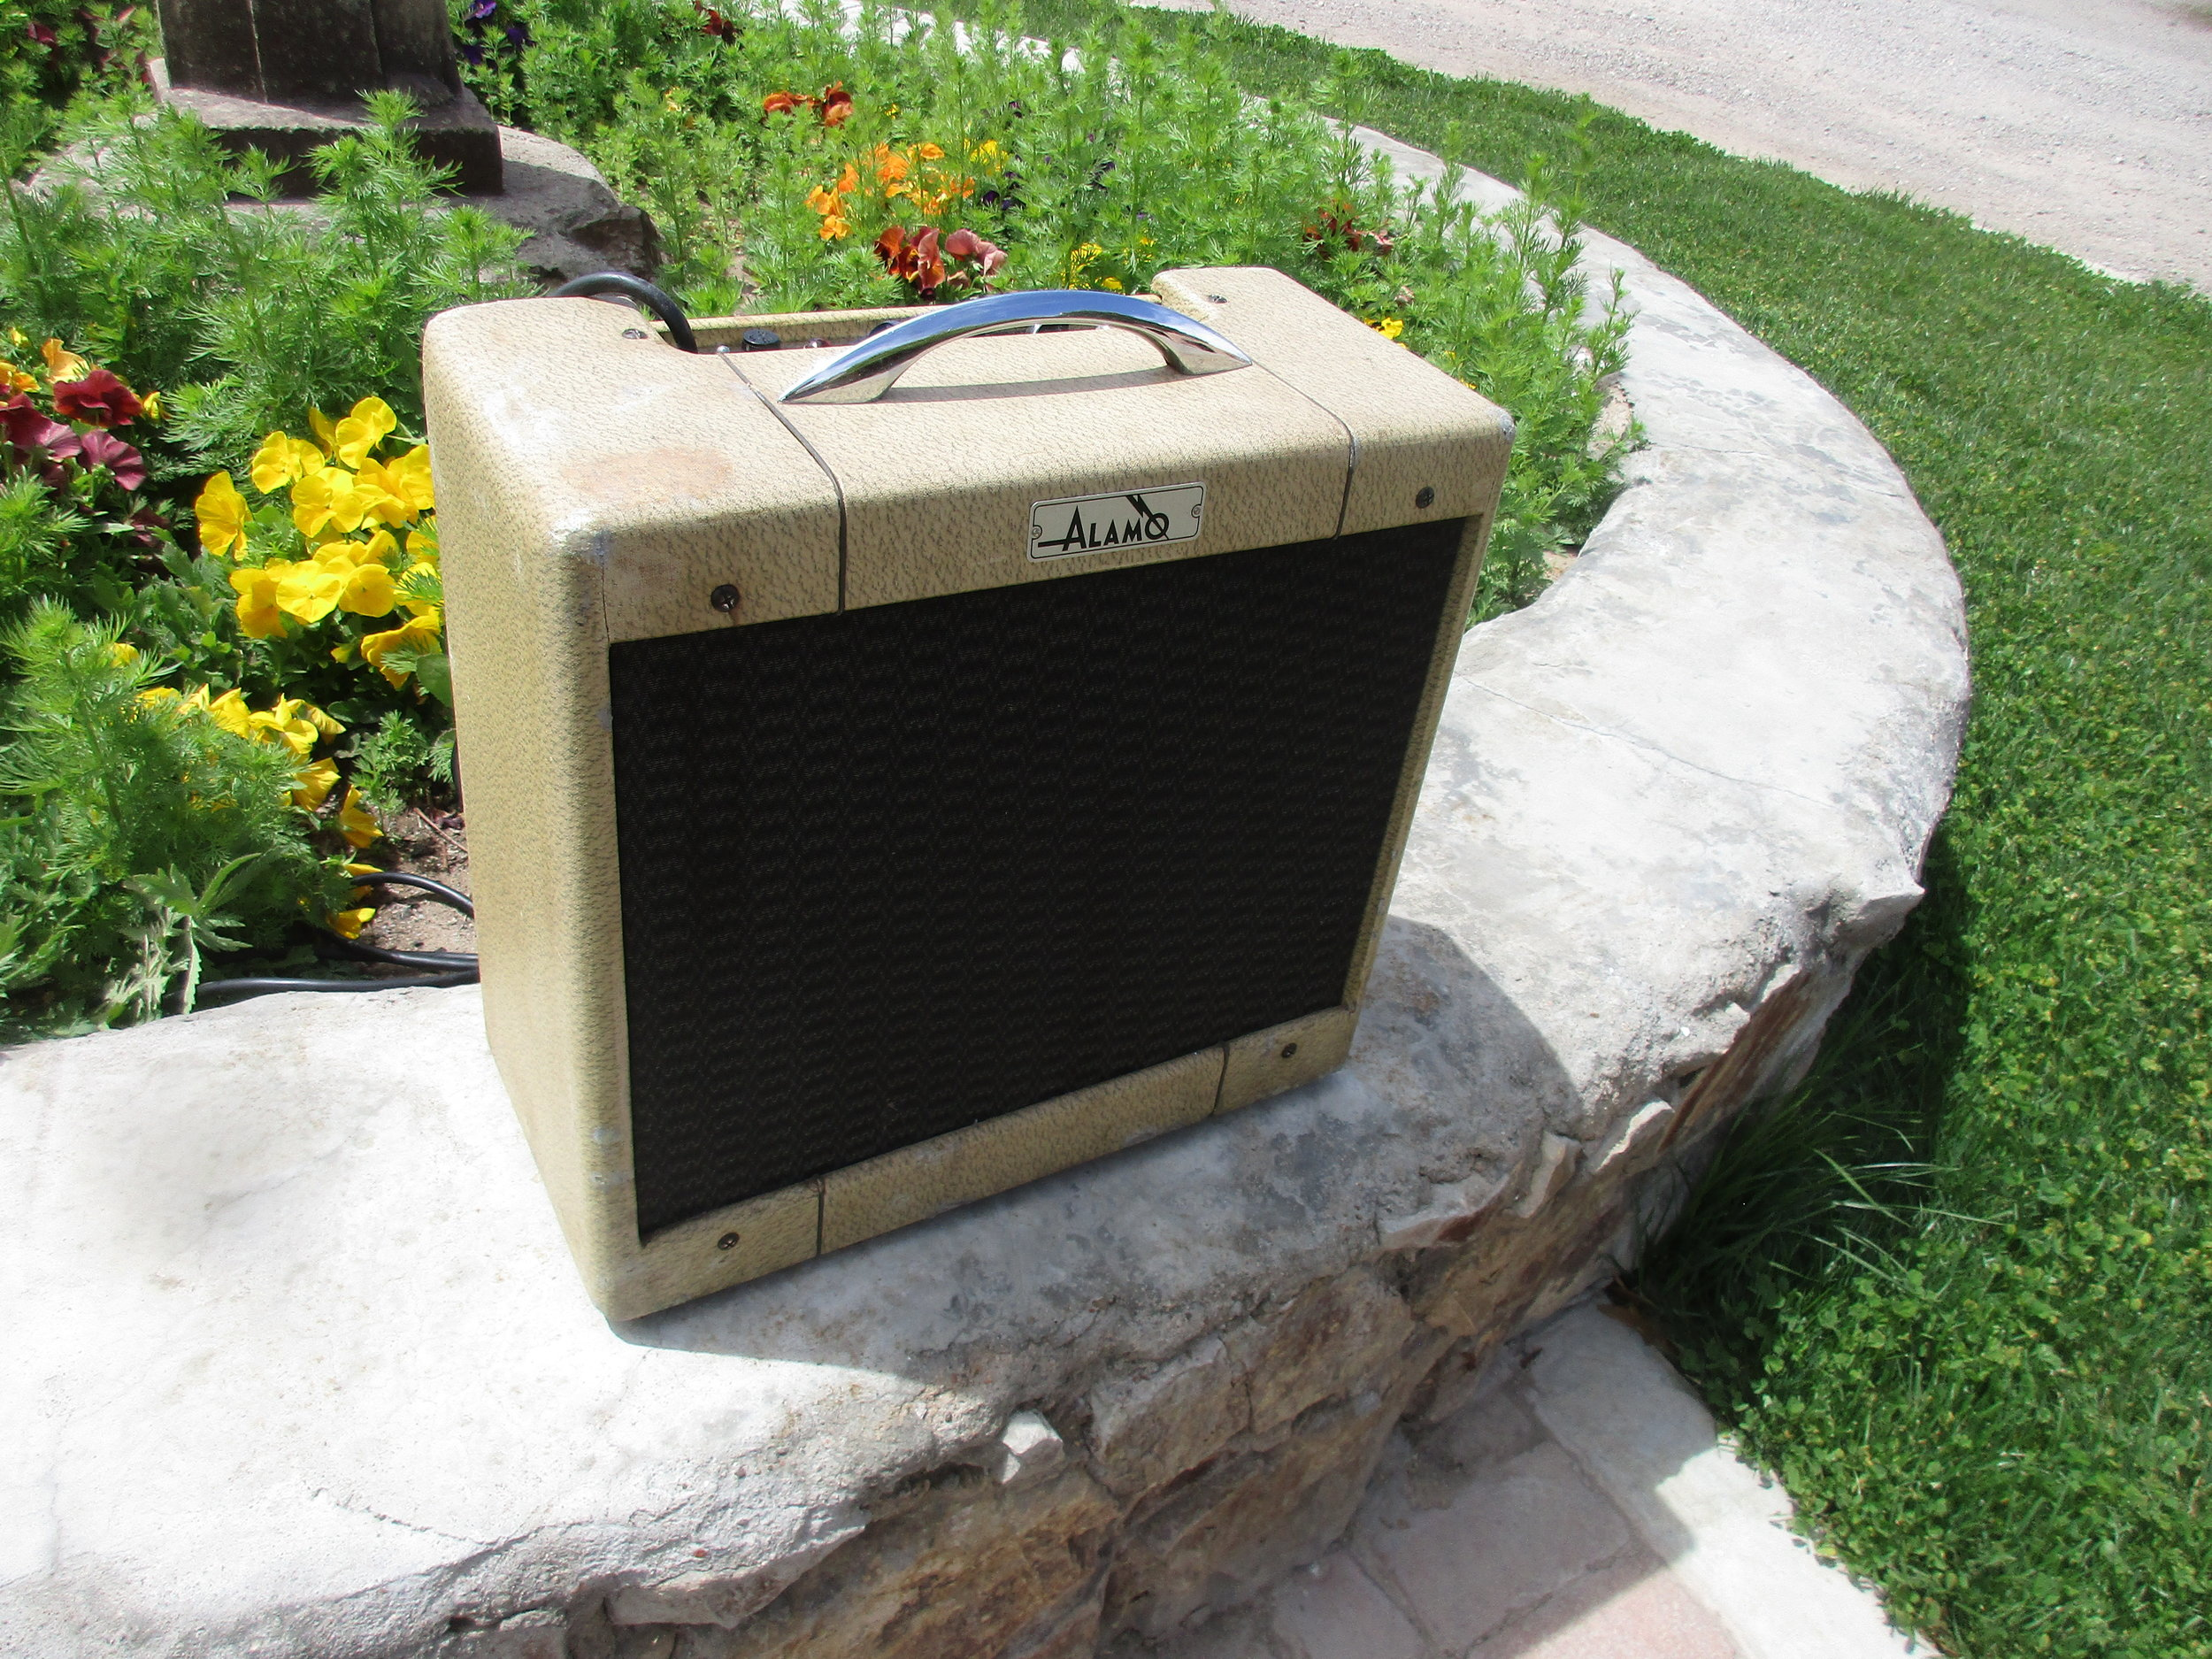 This late 50's Alamo amp came in with lots of problems plus they never really sounded to great to begin with (although they look really cool!). We re-capped the amp, re-coned the speaker, replaced some tubes and modified the amp to sound more like a Tweed Deluxe. It's killer little amp now!